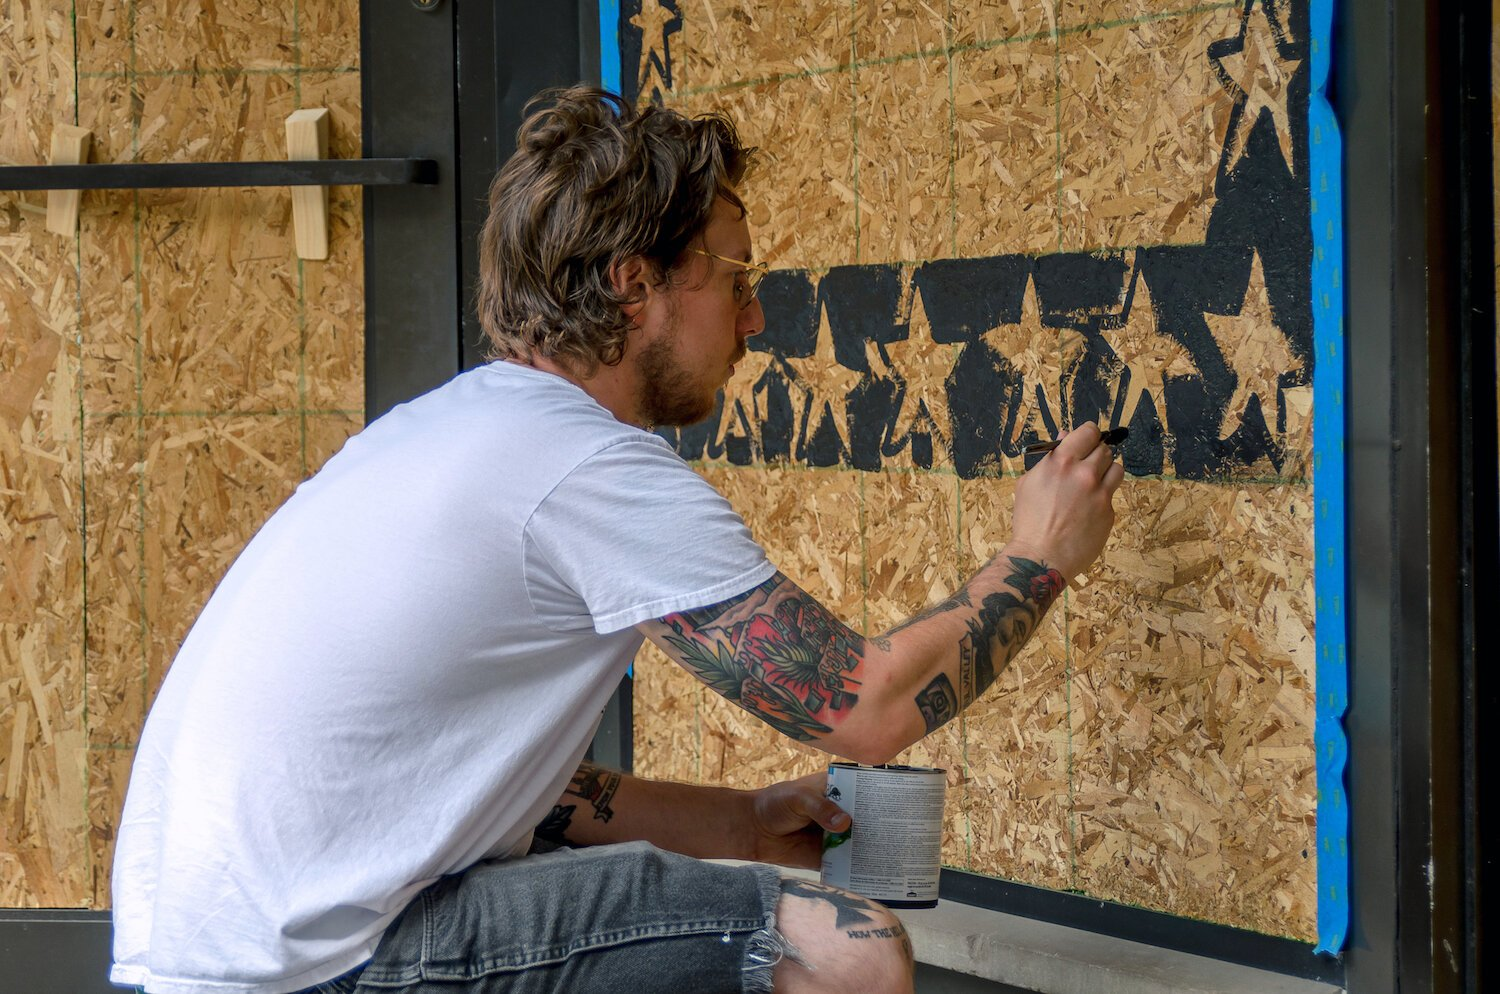 Jared Andrews paints a mural in downtown Fort Wayne.